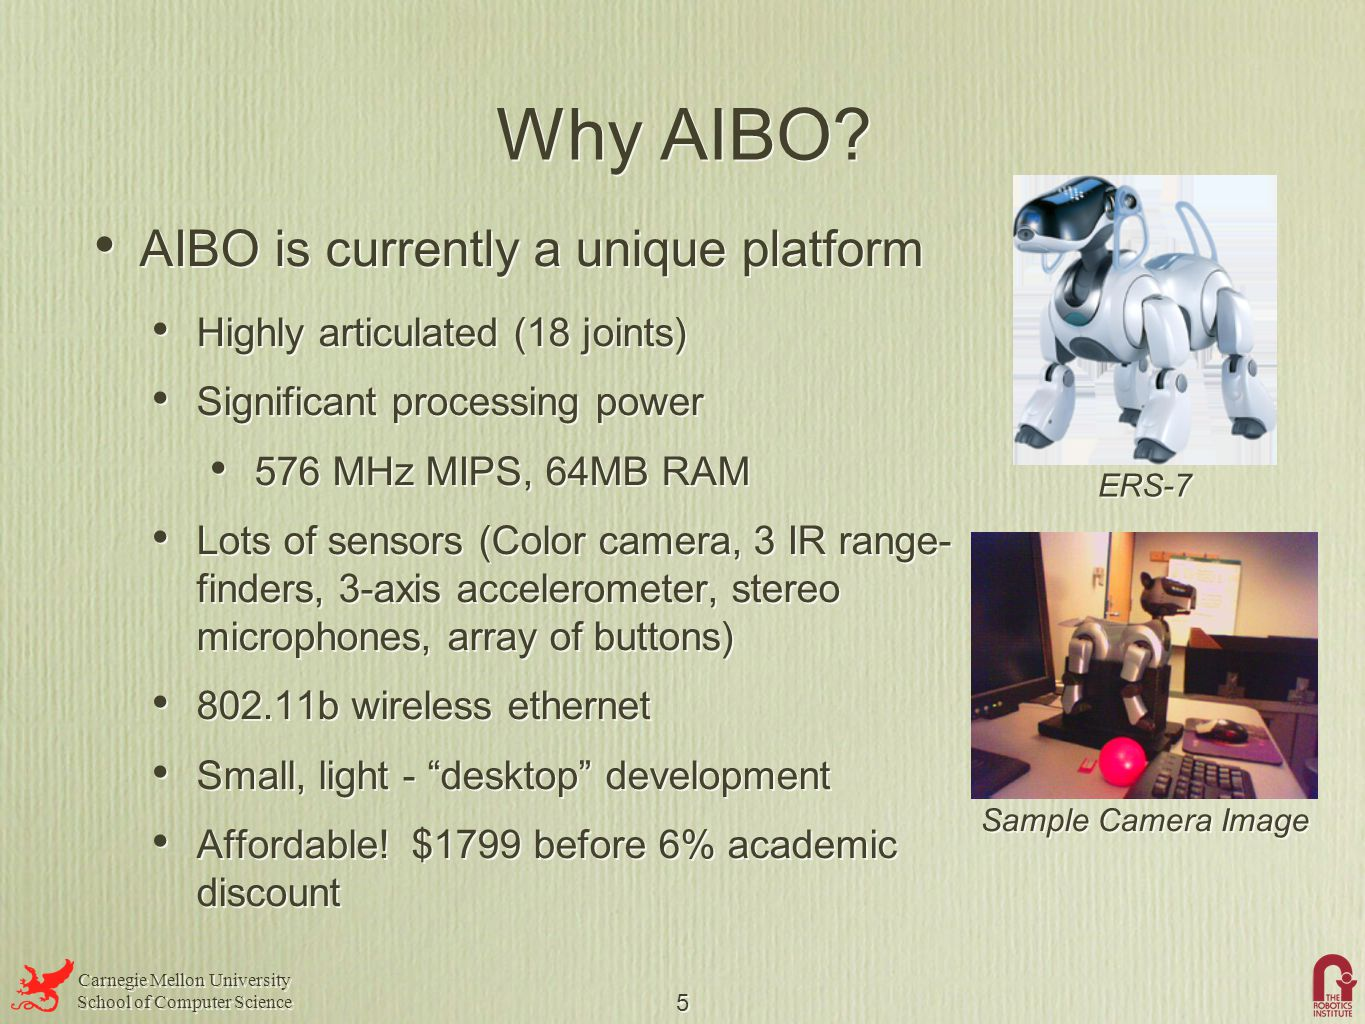 Carnegie Mellon University School of Computer Science Carnegie Mellon University School of Computer Science 5 Why AIBO? AIBO is currently a unique pla